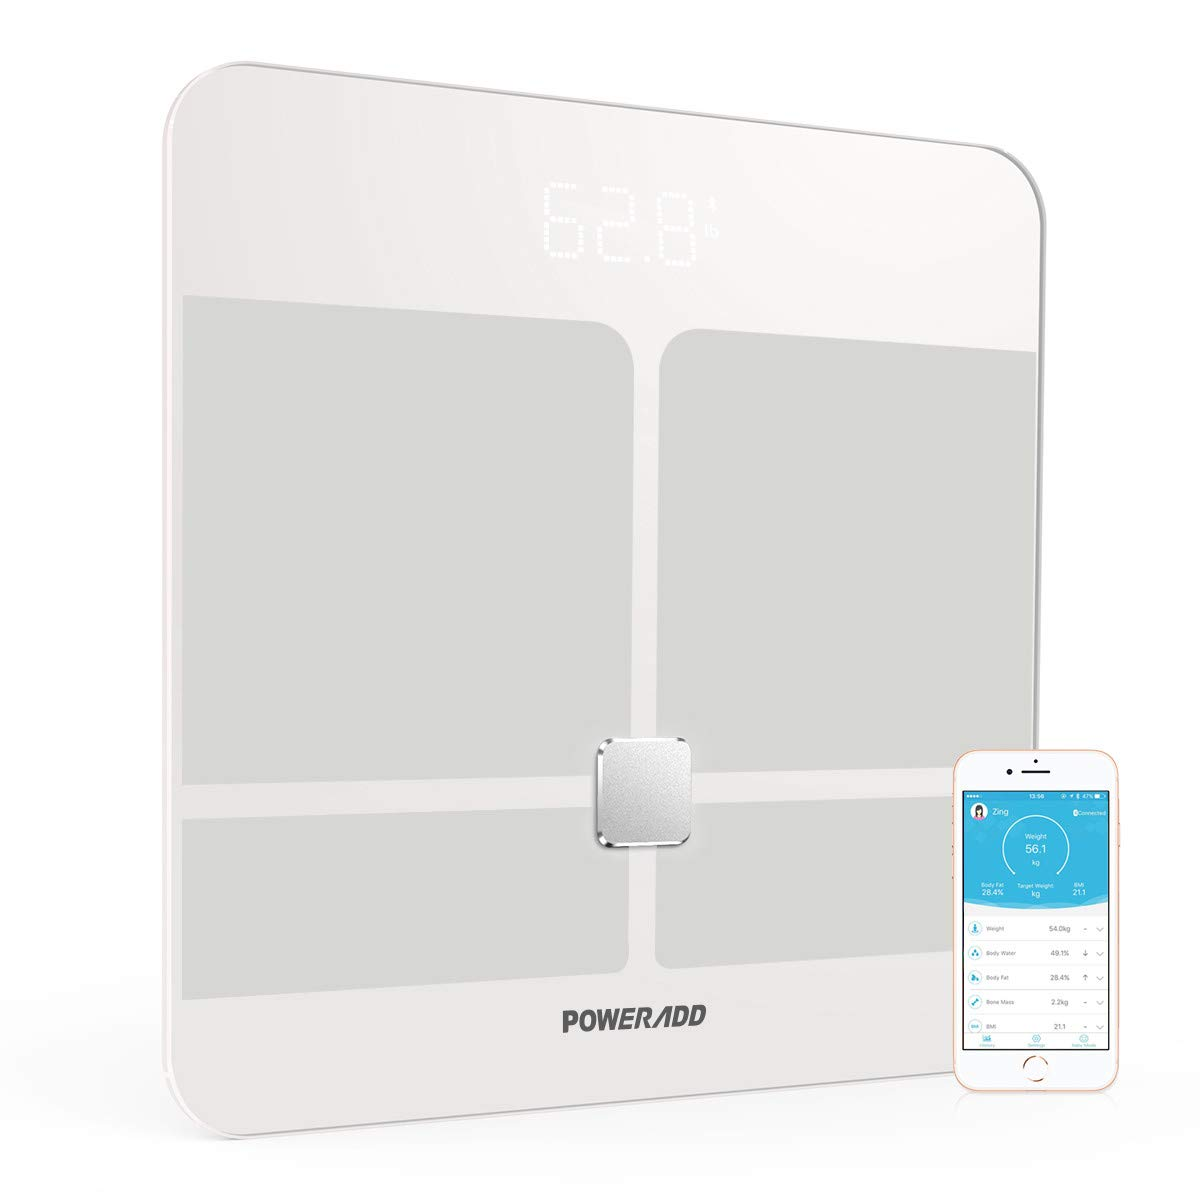 Body Fat Scale, Poweradd Digital Smart Scale, Body Composition Analyzer ITO Technology for Body Weight, Body Fat,Hydration, Bone Mass and Muscle, Bmi, Bmr Visceral Fat with iOS and Android APP